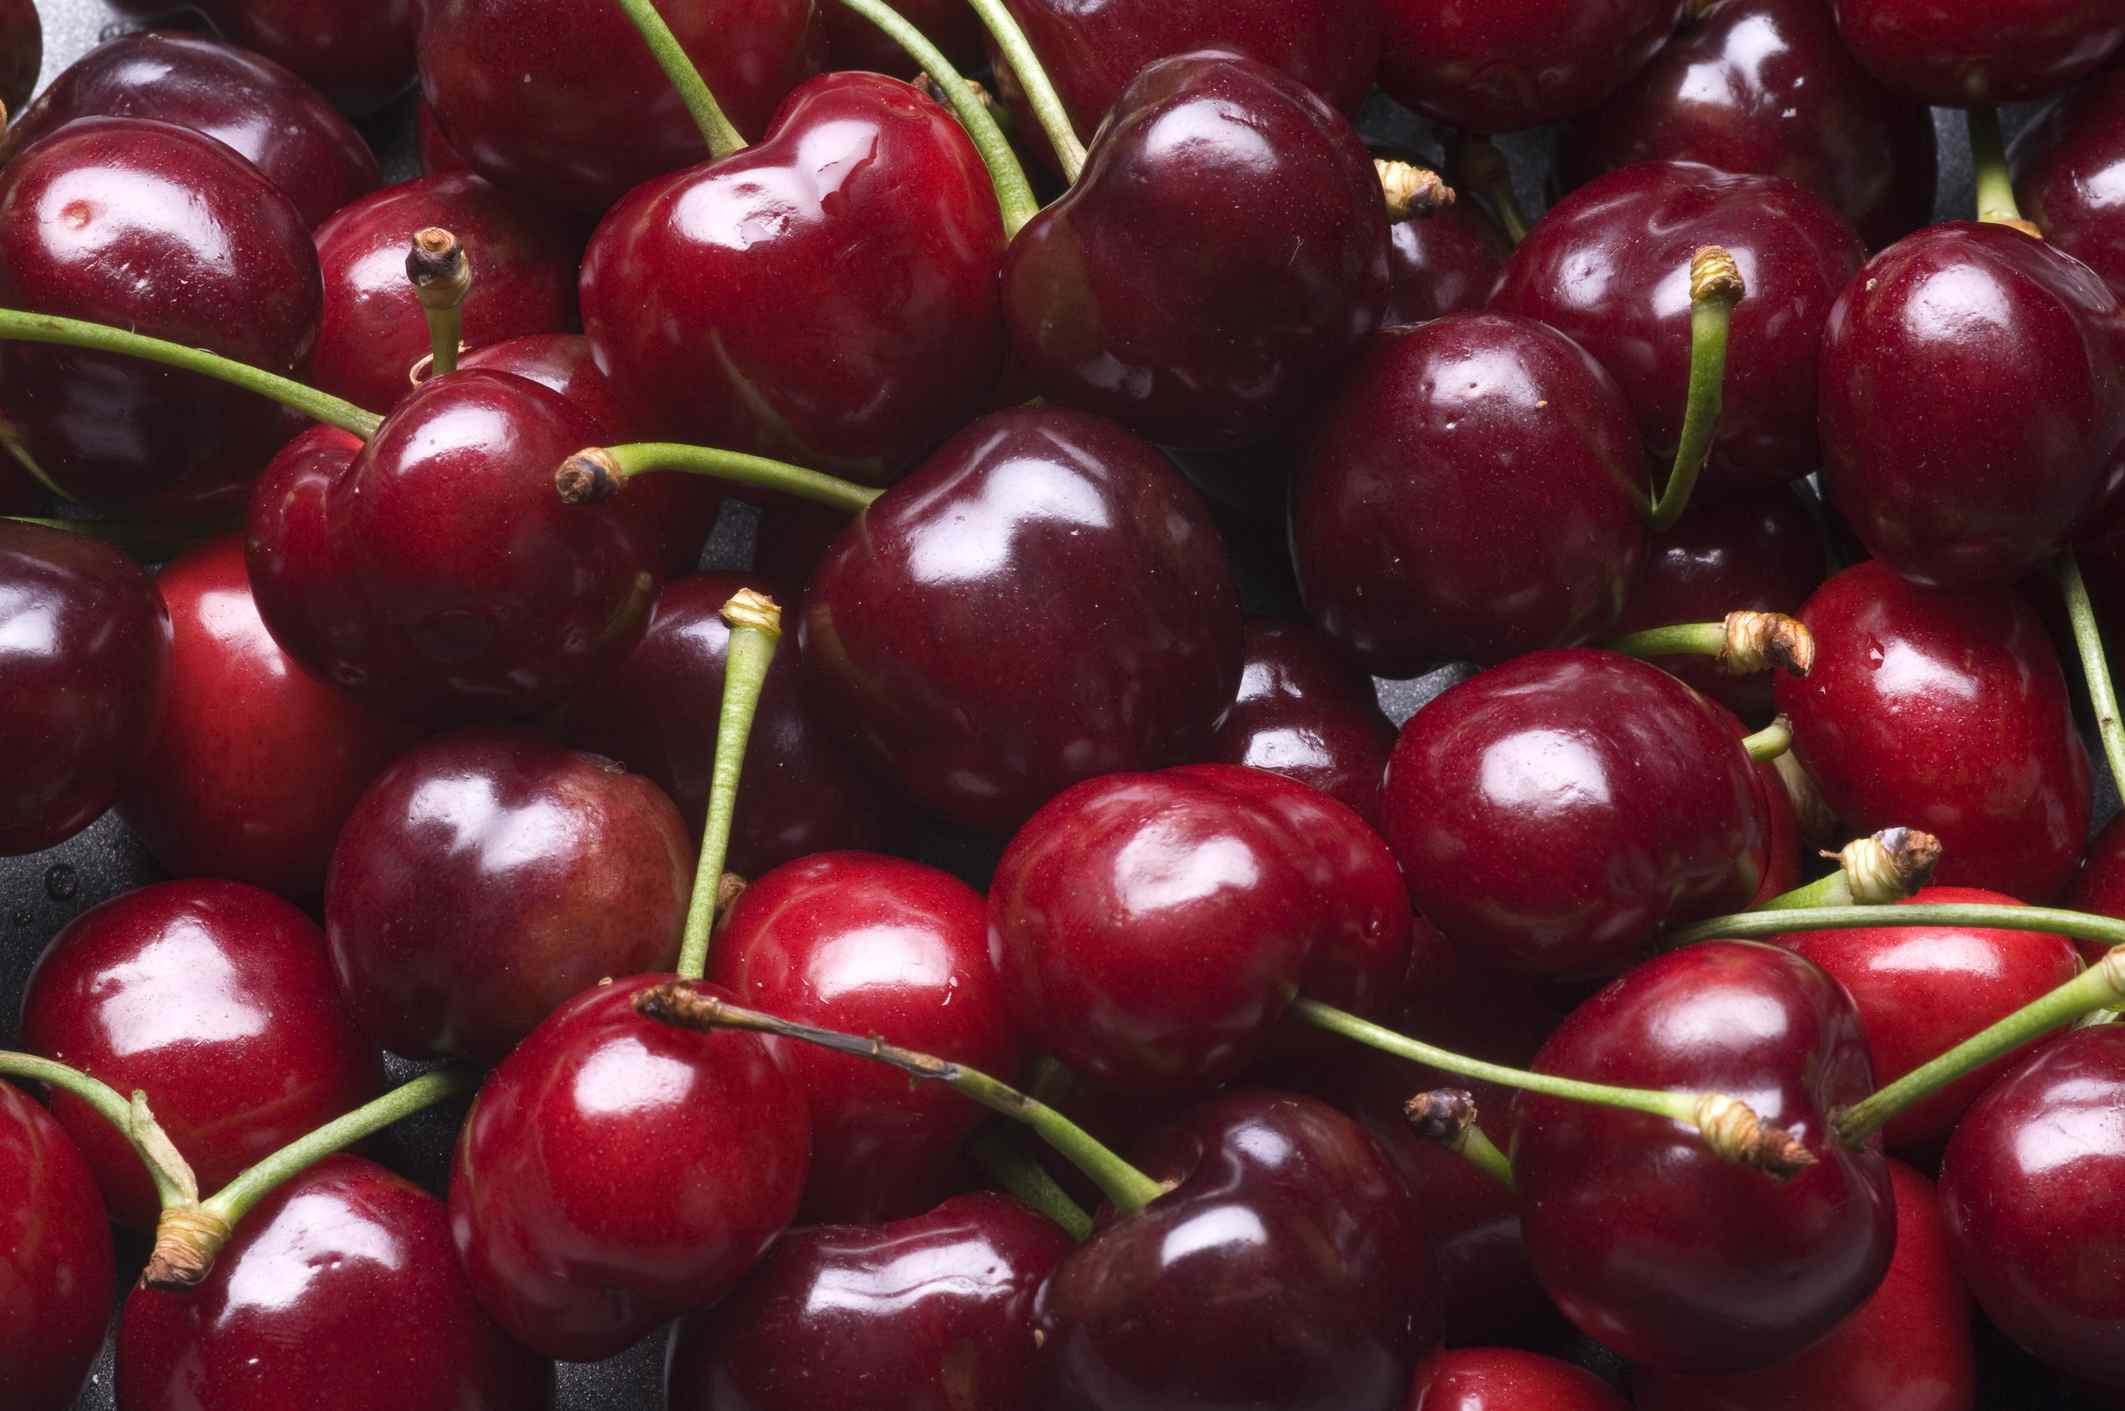 Fresh Bing cherries at market